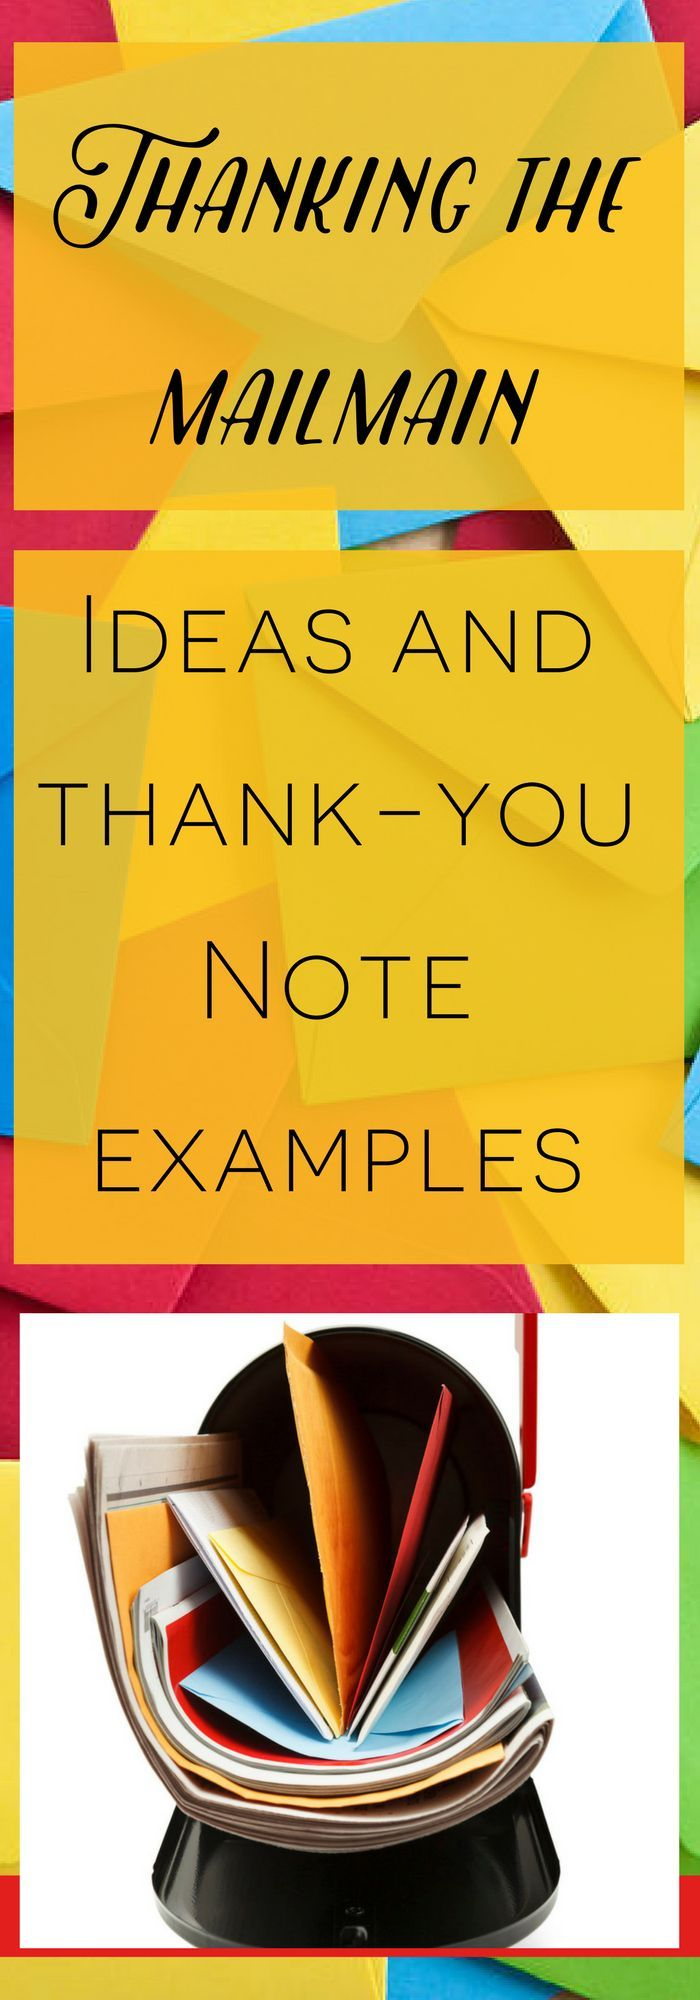 how to write thank you notes for wedding gift cards%0A Thank you note to mailman examples  and other ideas on how to thank the  mailman